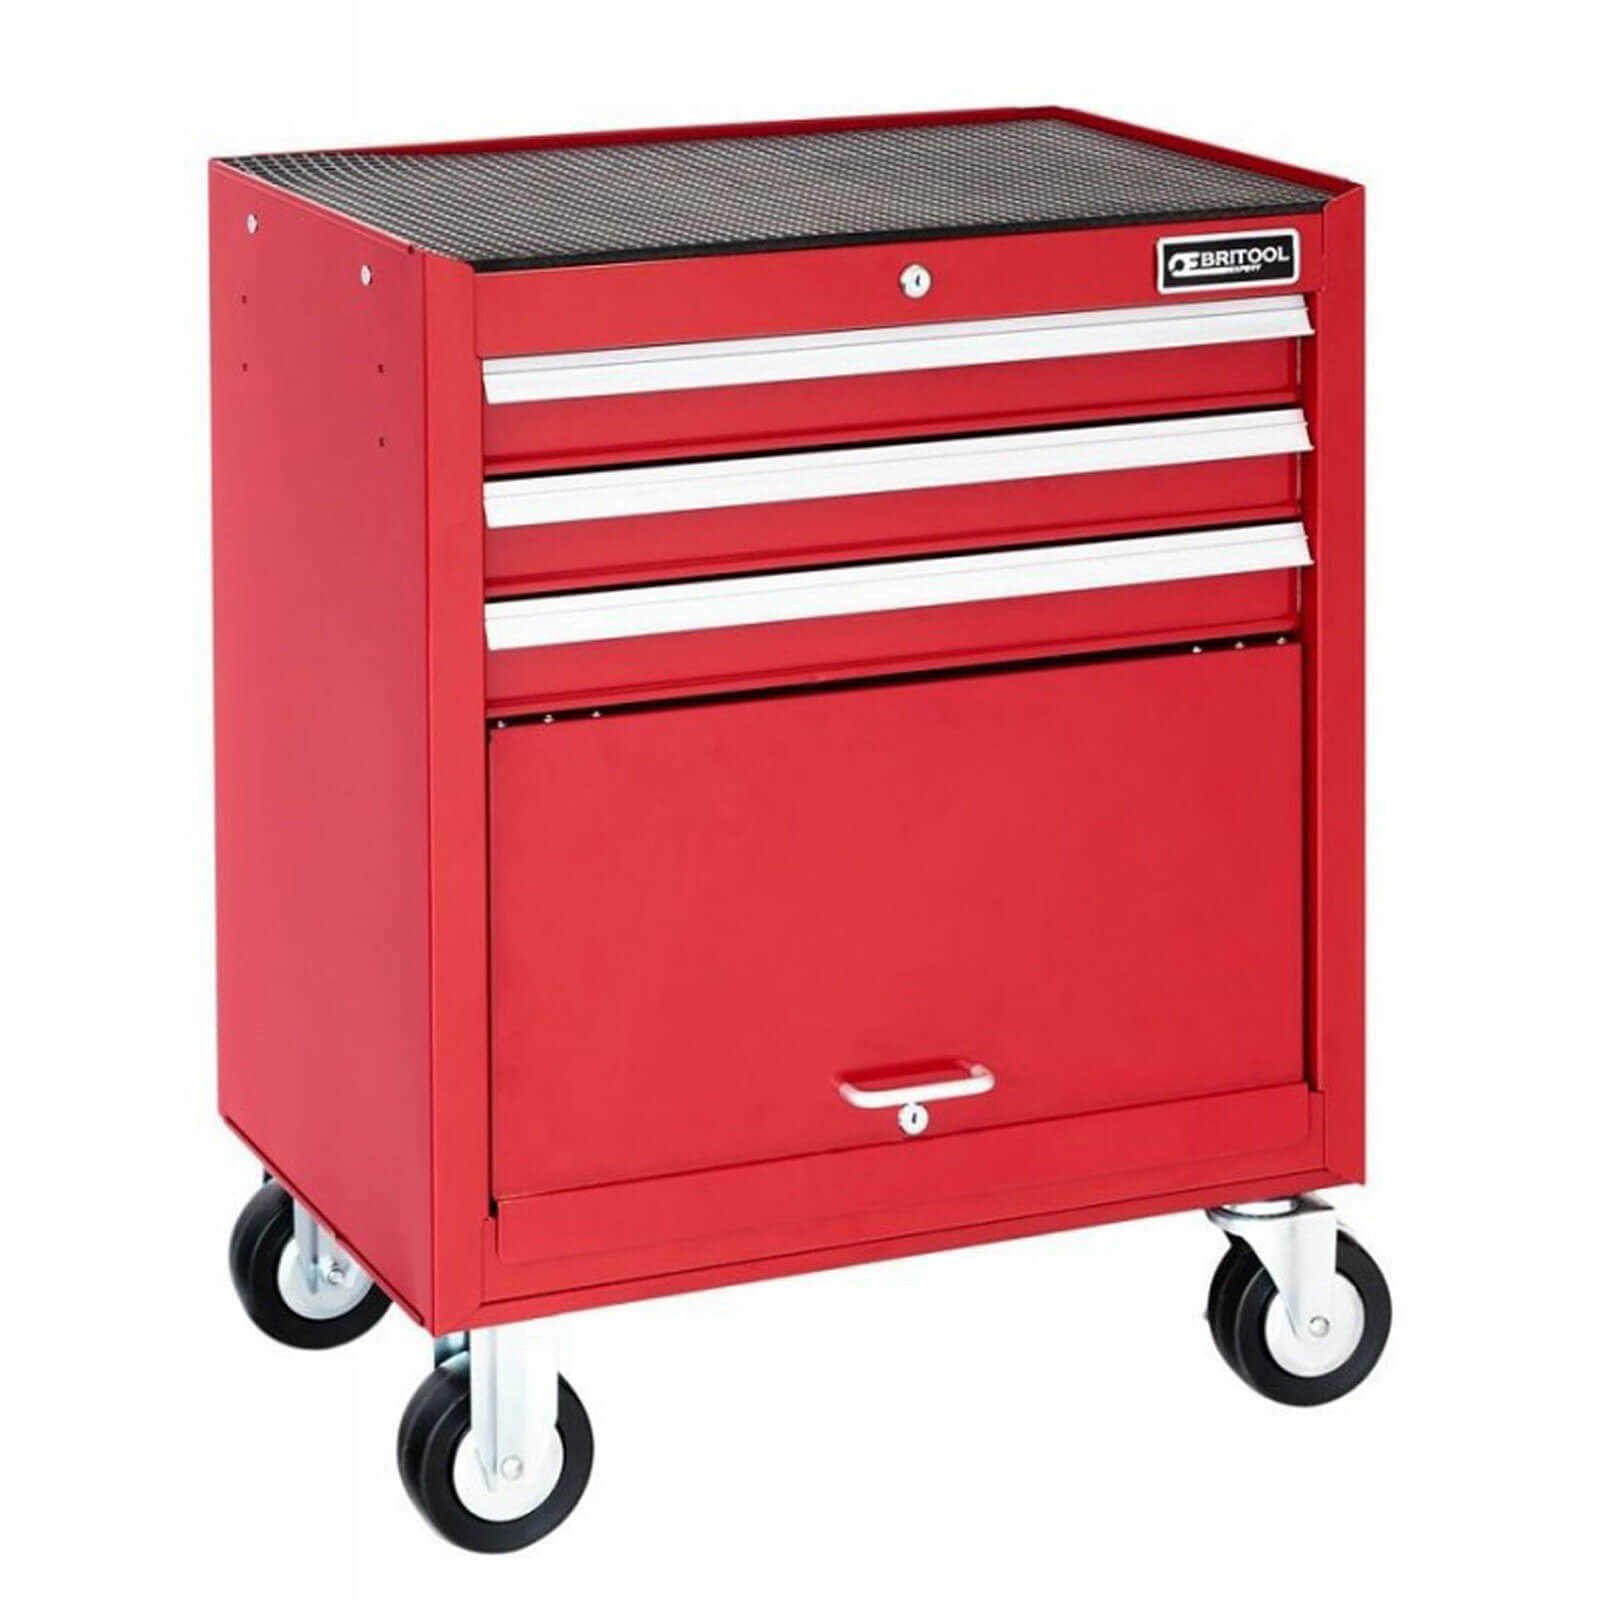 Image of Britool 3 Drawer Roller Cabinet Red